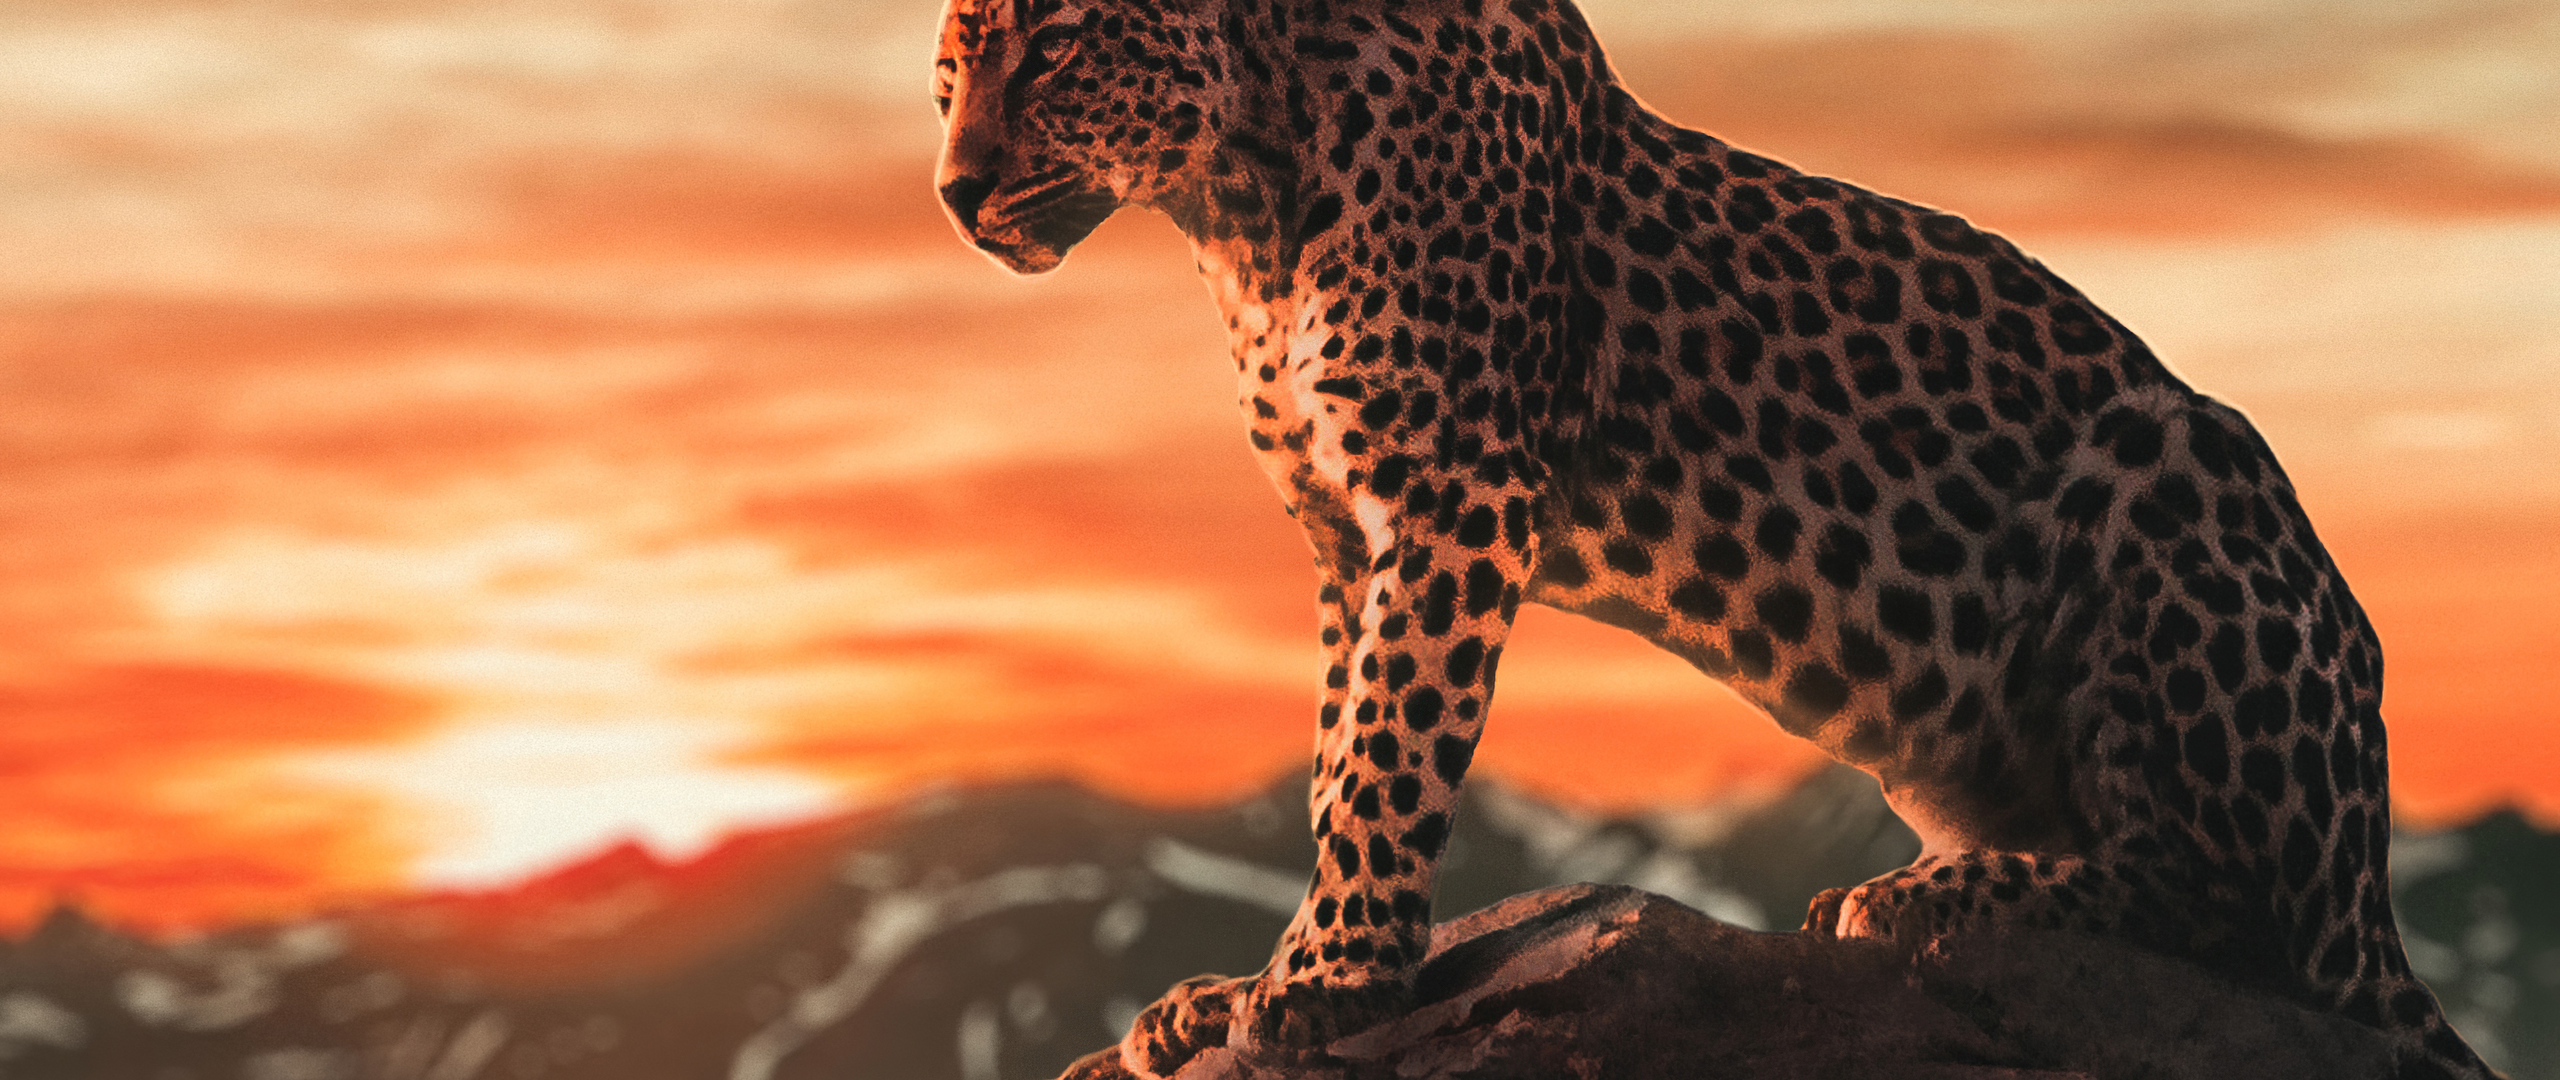 cheetah-morning-time-4k-7a.jpg